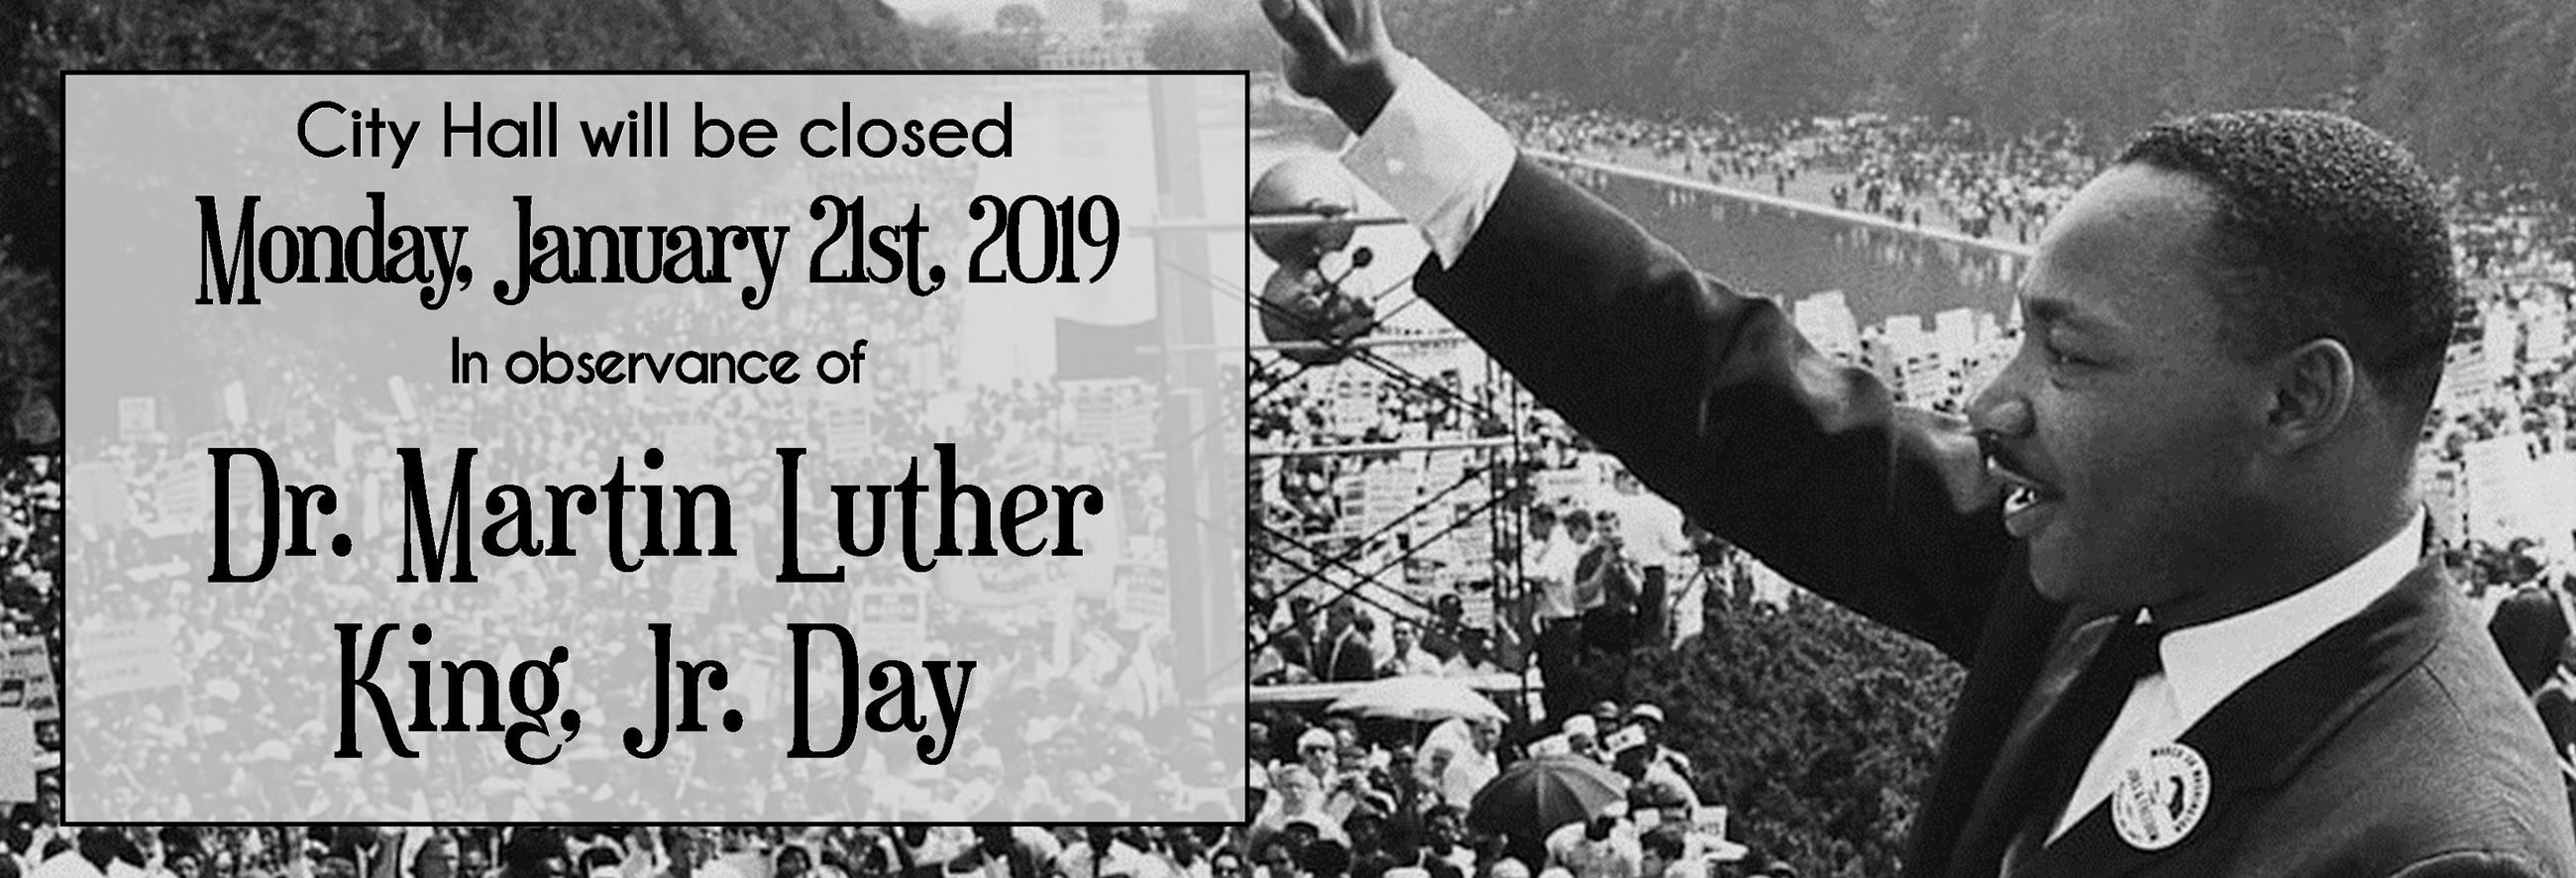 City Hall closed Monday January 21st 2019 in observance of Dr. Martin Luther King Jr. Day